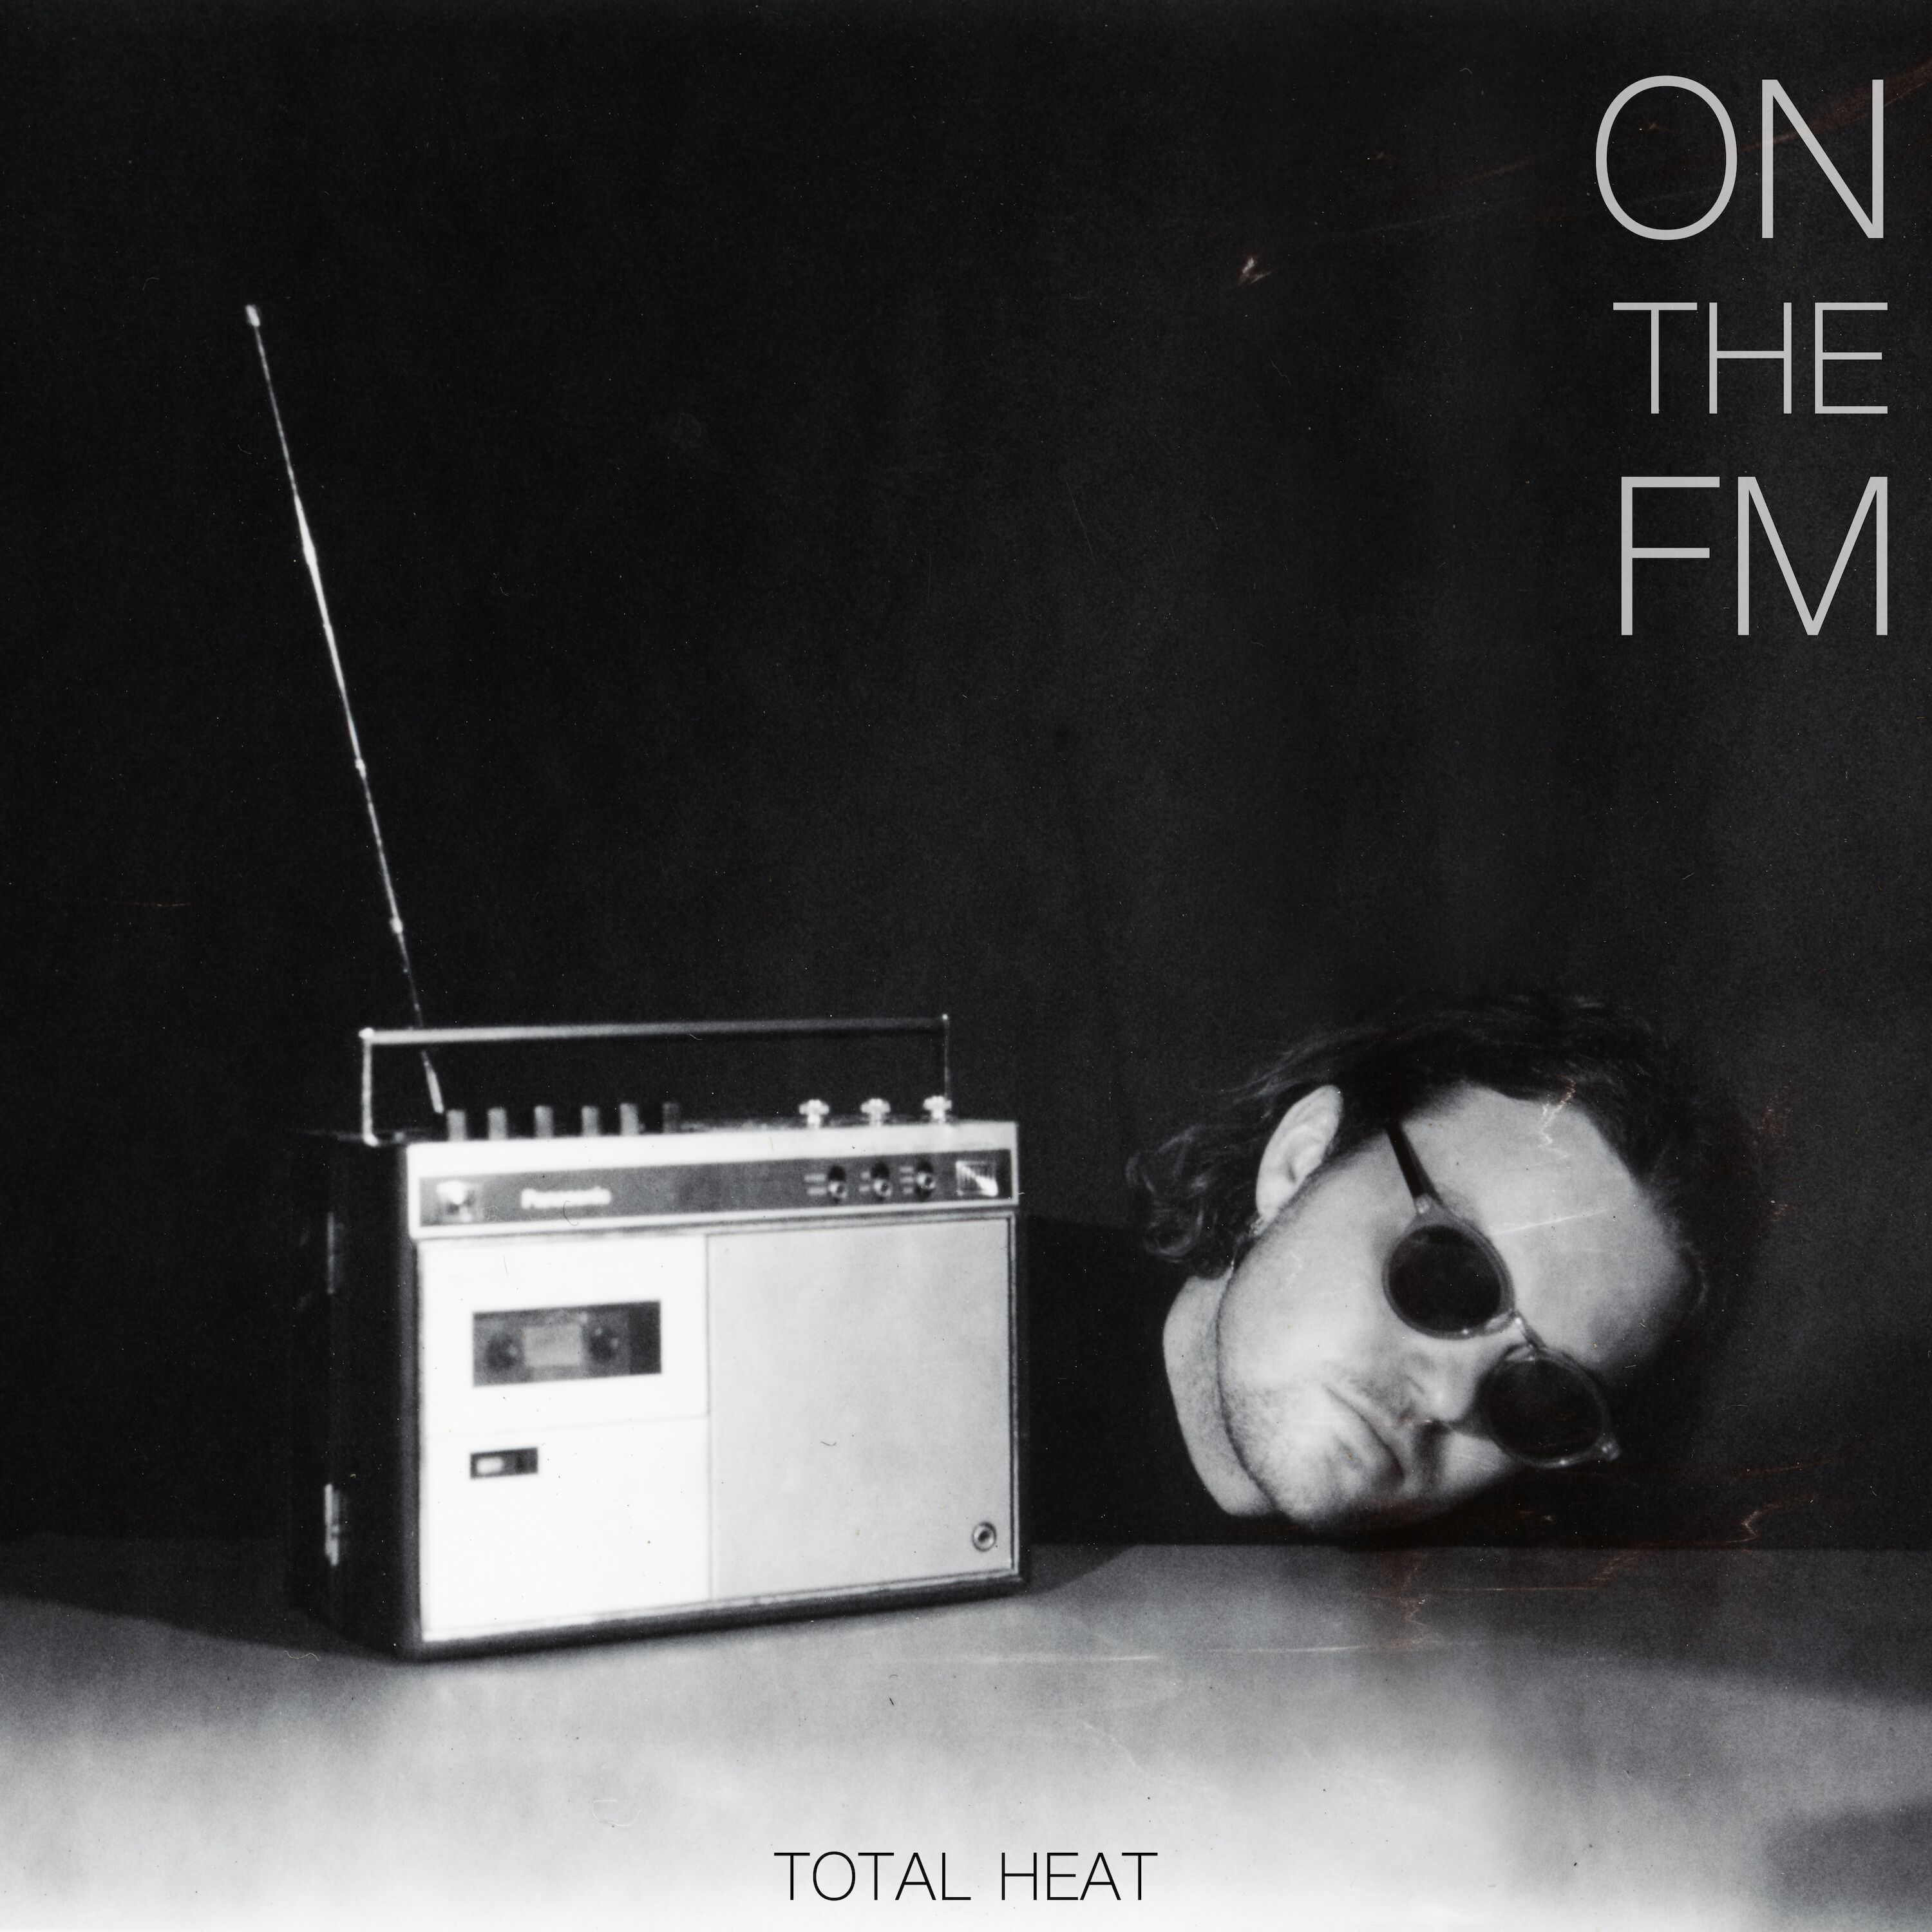 Total Heat - On the FM - Single